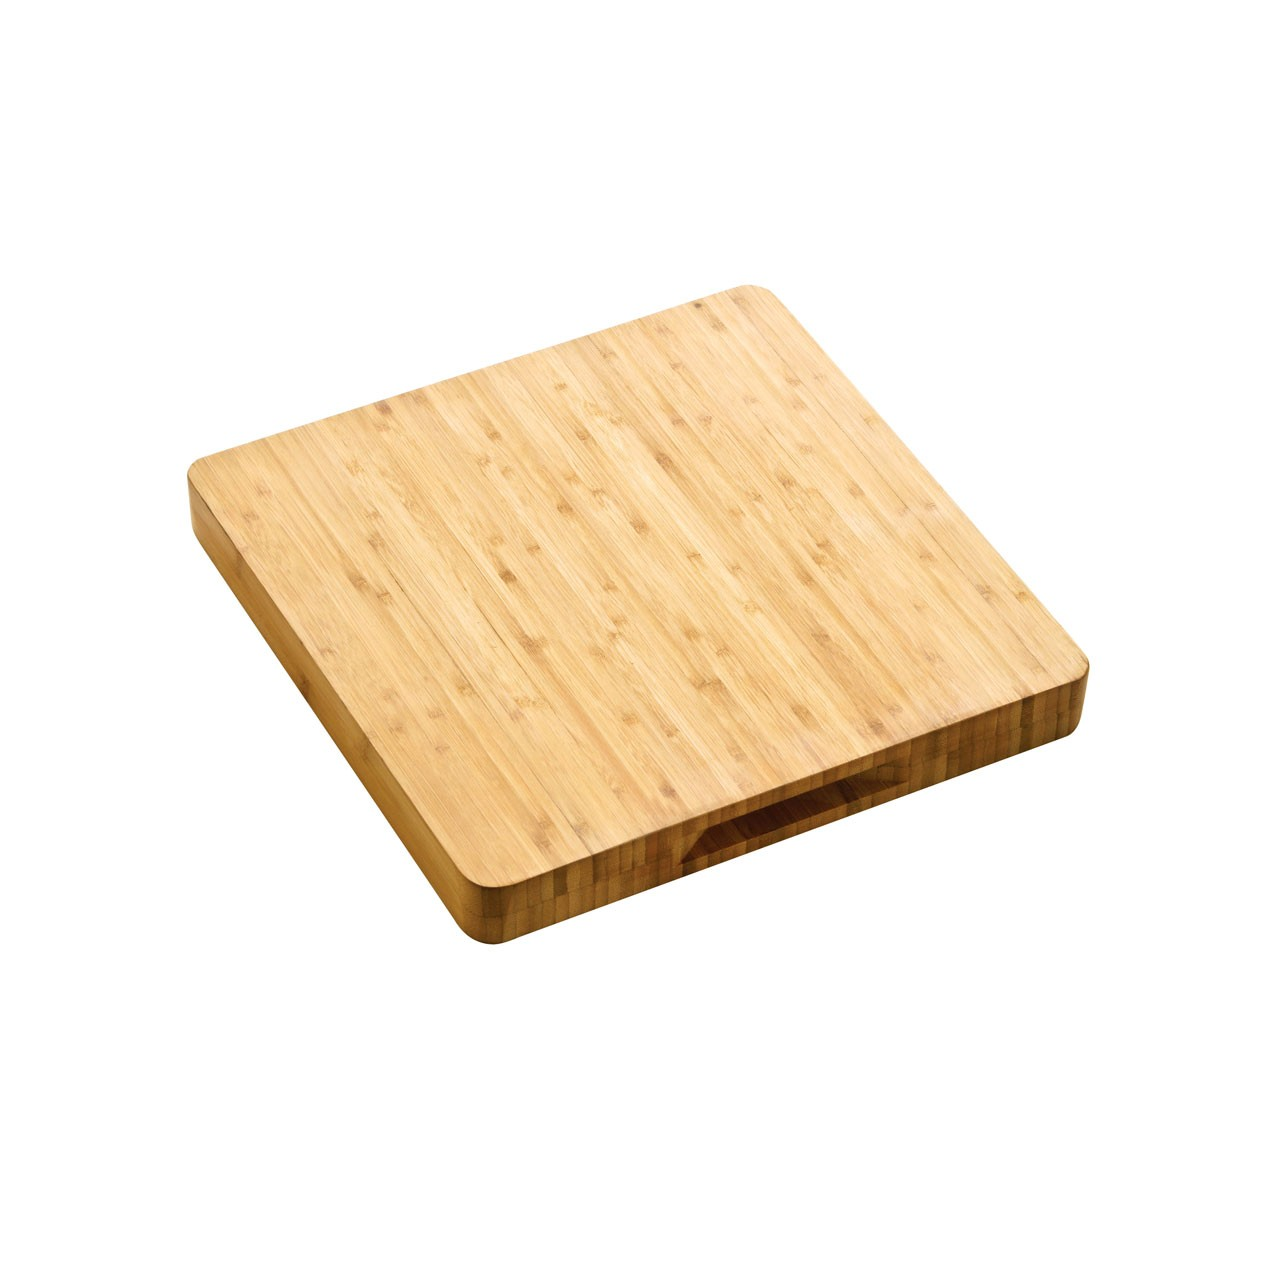 Premier Housewares Butchers Block with Handles - 33 cm - Bamboo